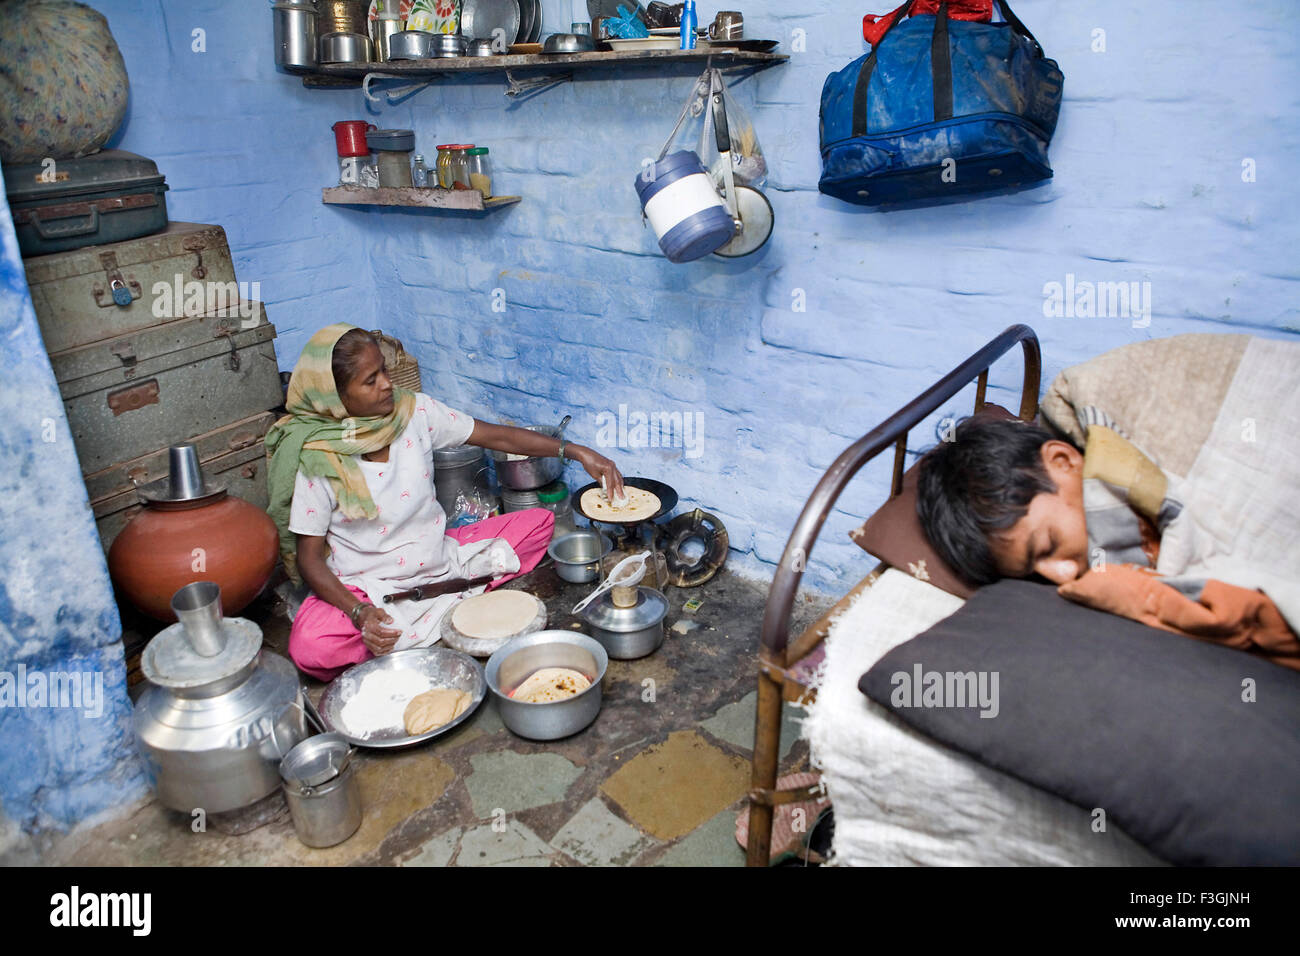 A small house of a construction worker ahmedabad gujarat india